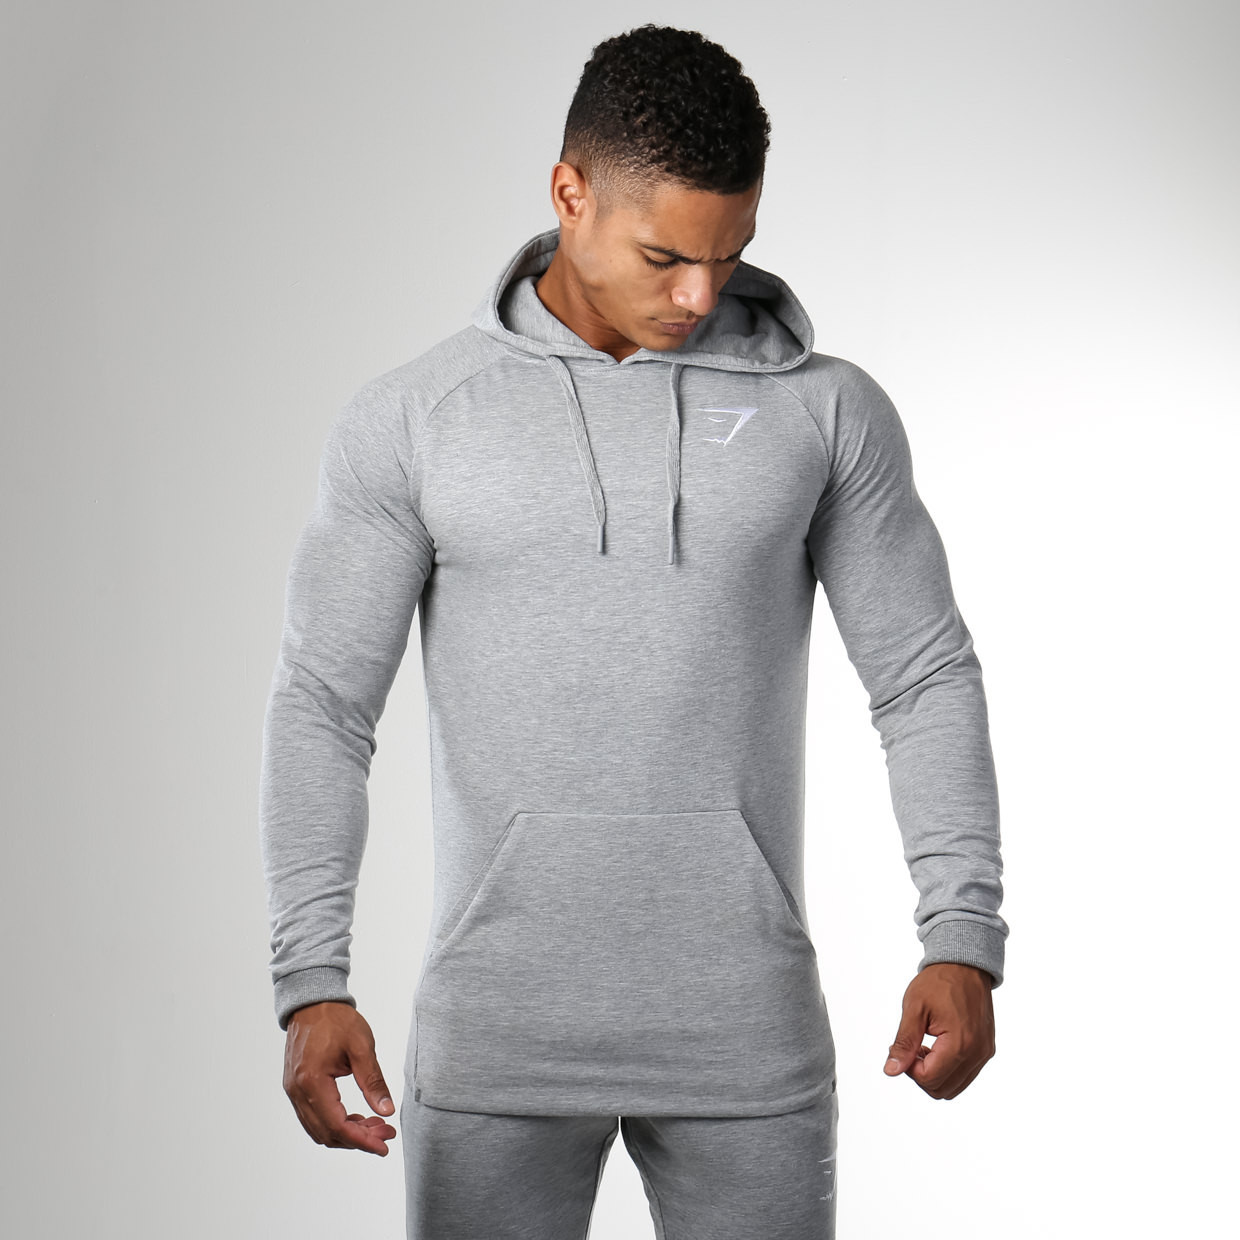 [Reviewed] Gymshark Men's Ark Pullover (2018)